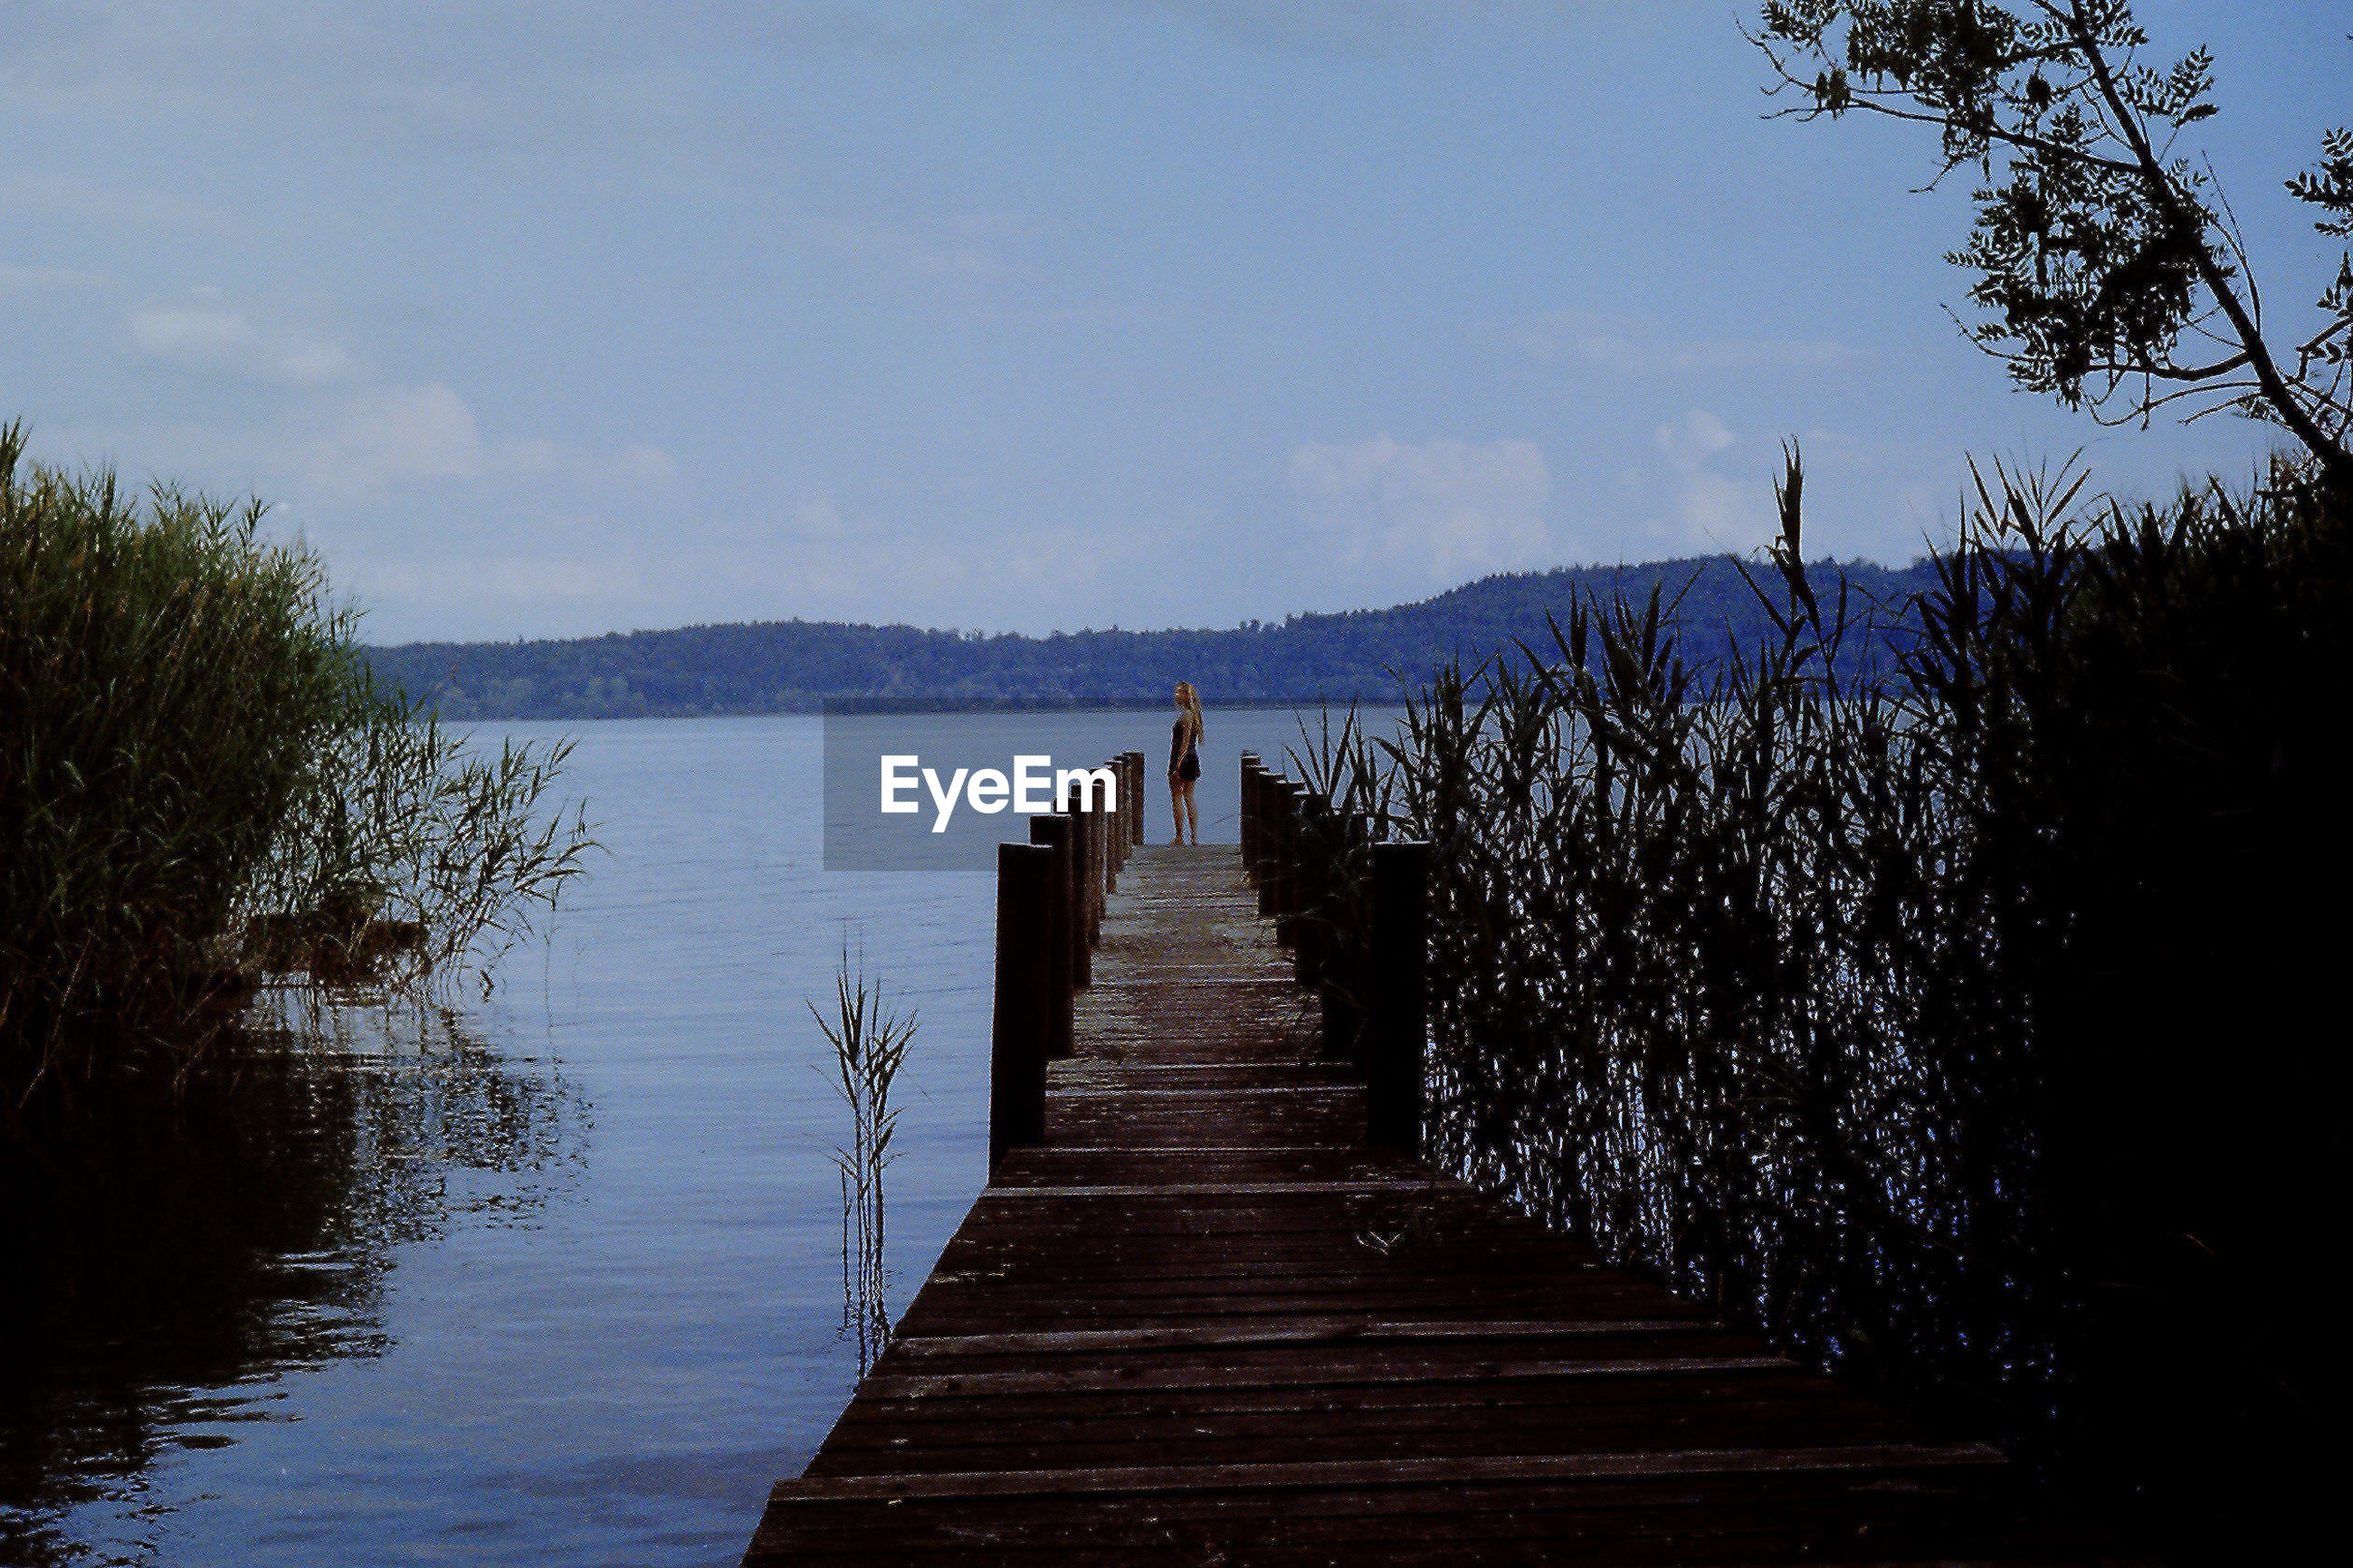 WOODEN JETTY LEADING TO PIER OVER LAKE AGAINST SKY